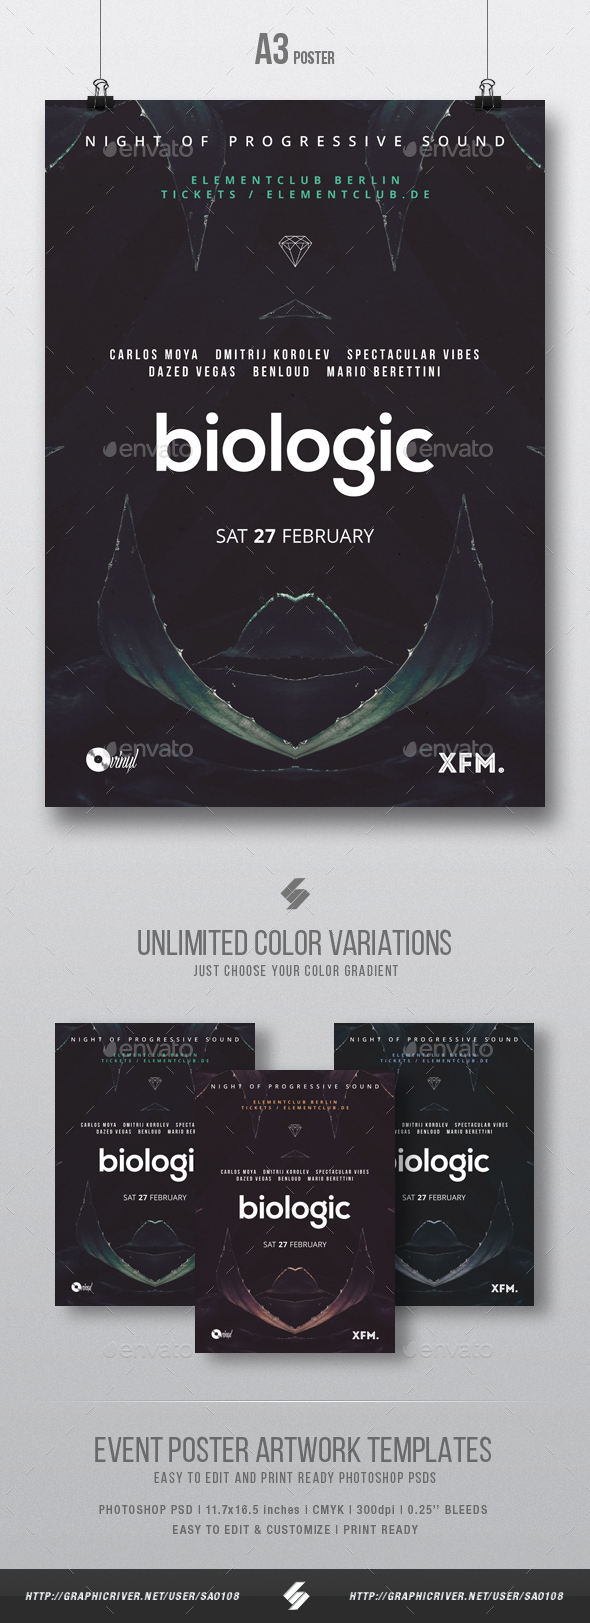 Biologic - Tech-house Minimal Party Flyer / Poster Template A3 - Clubs & Parties Events